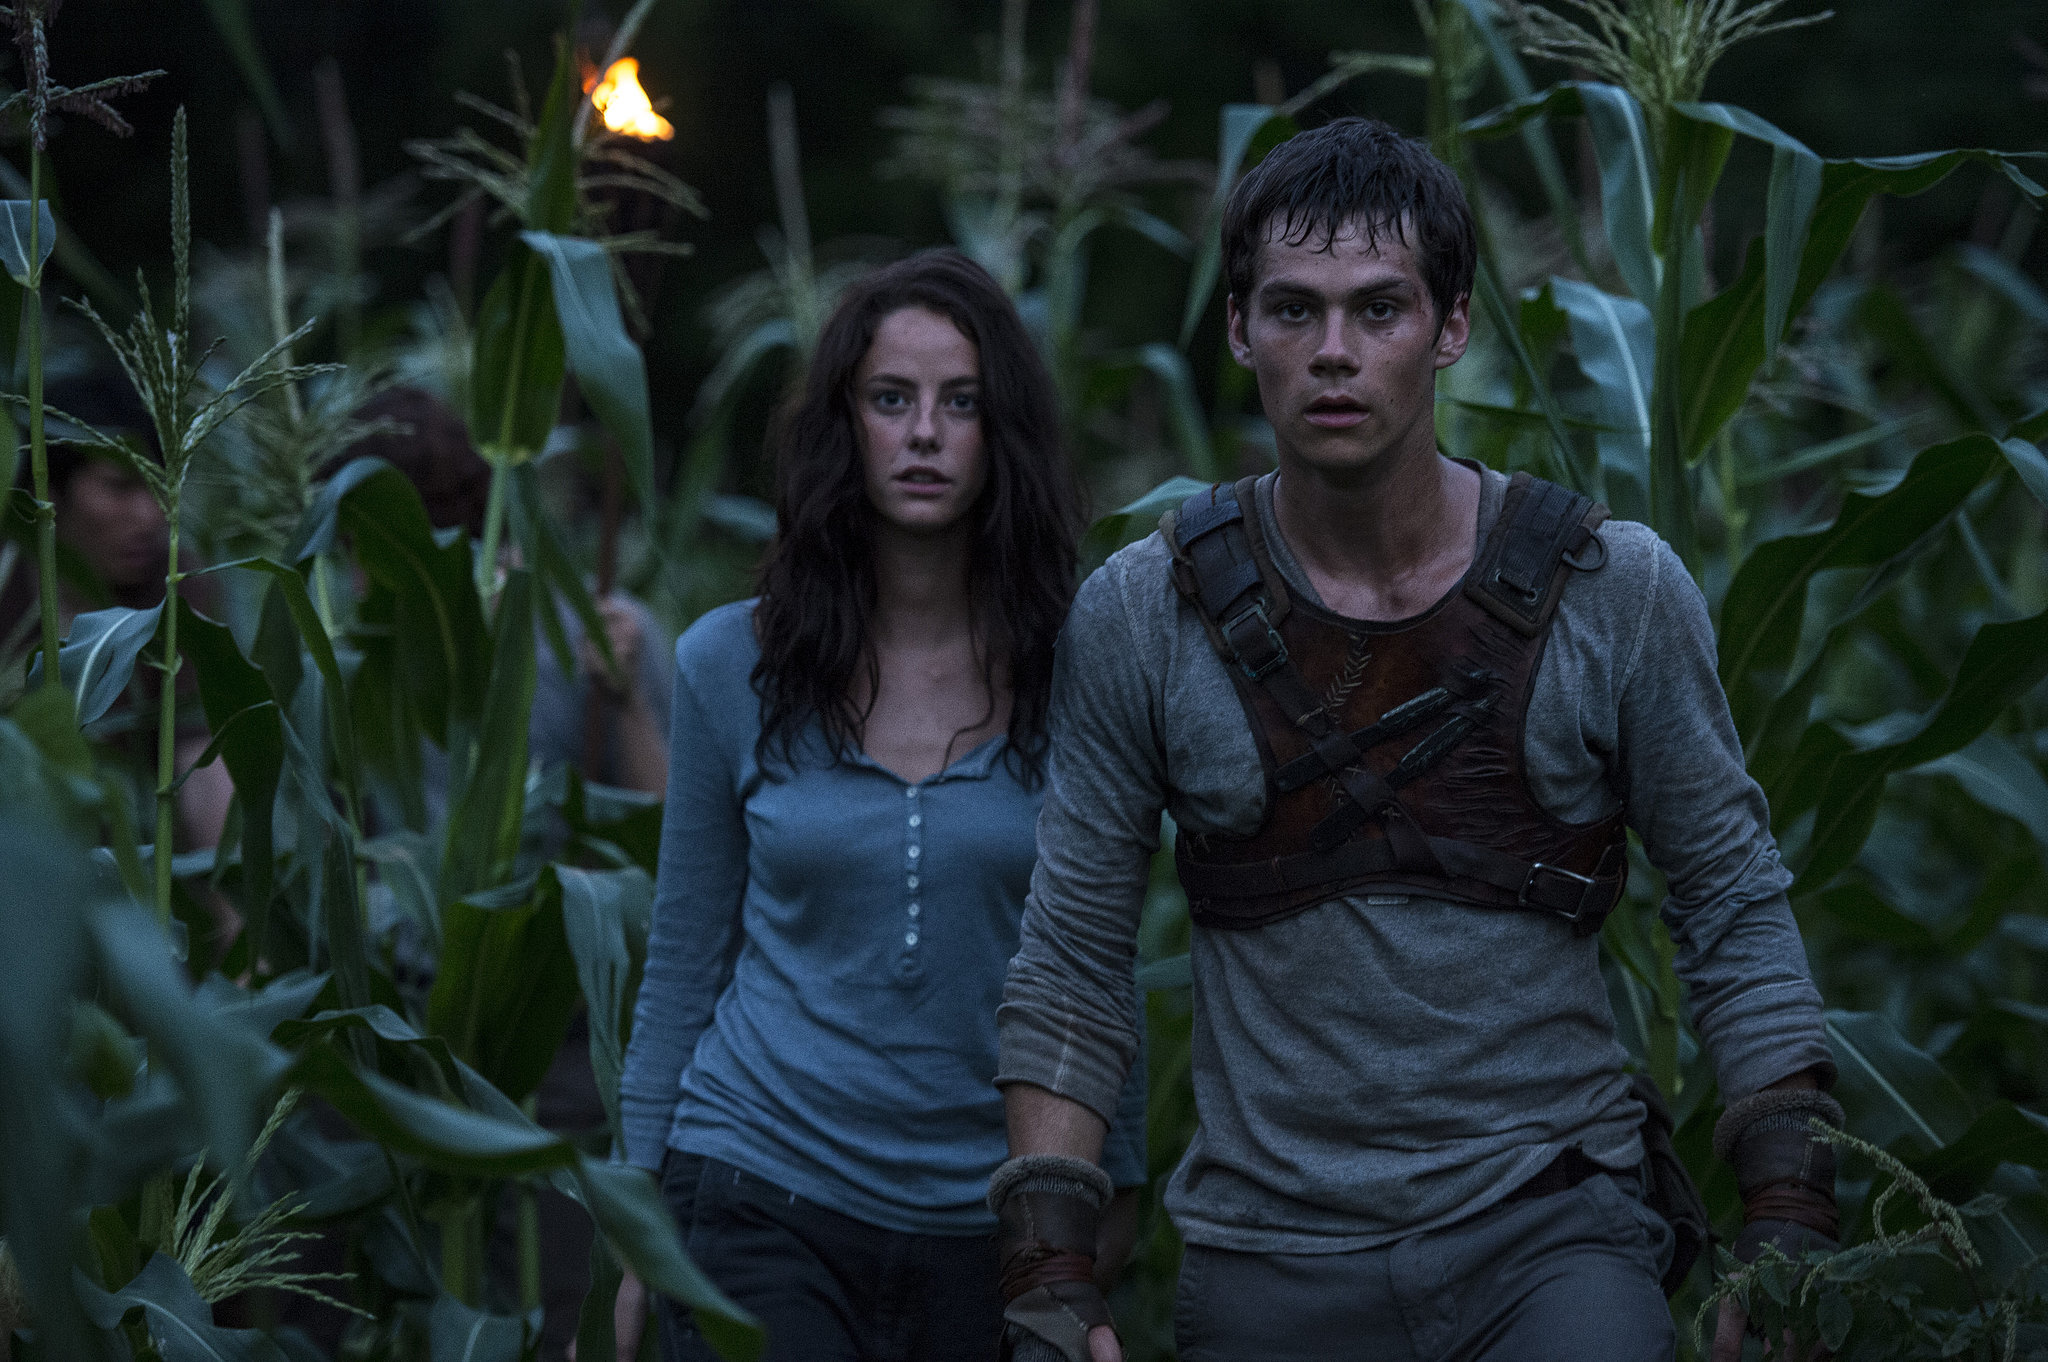 Kaya Scodelario Interview for The Maze Runner | POPSUGAR ...